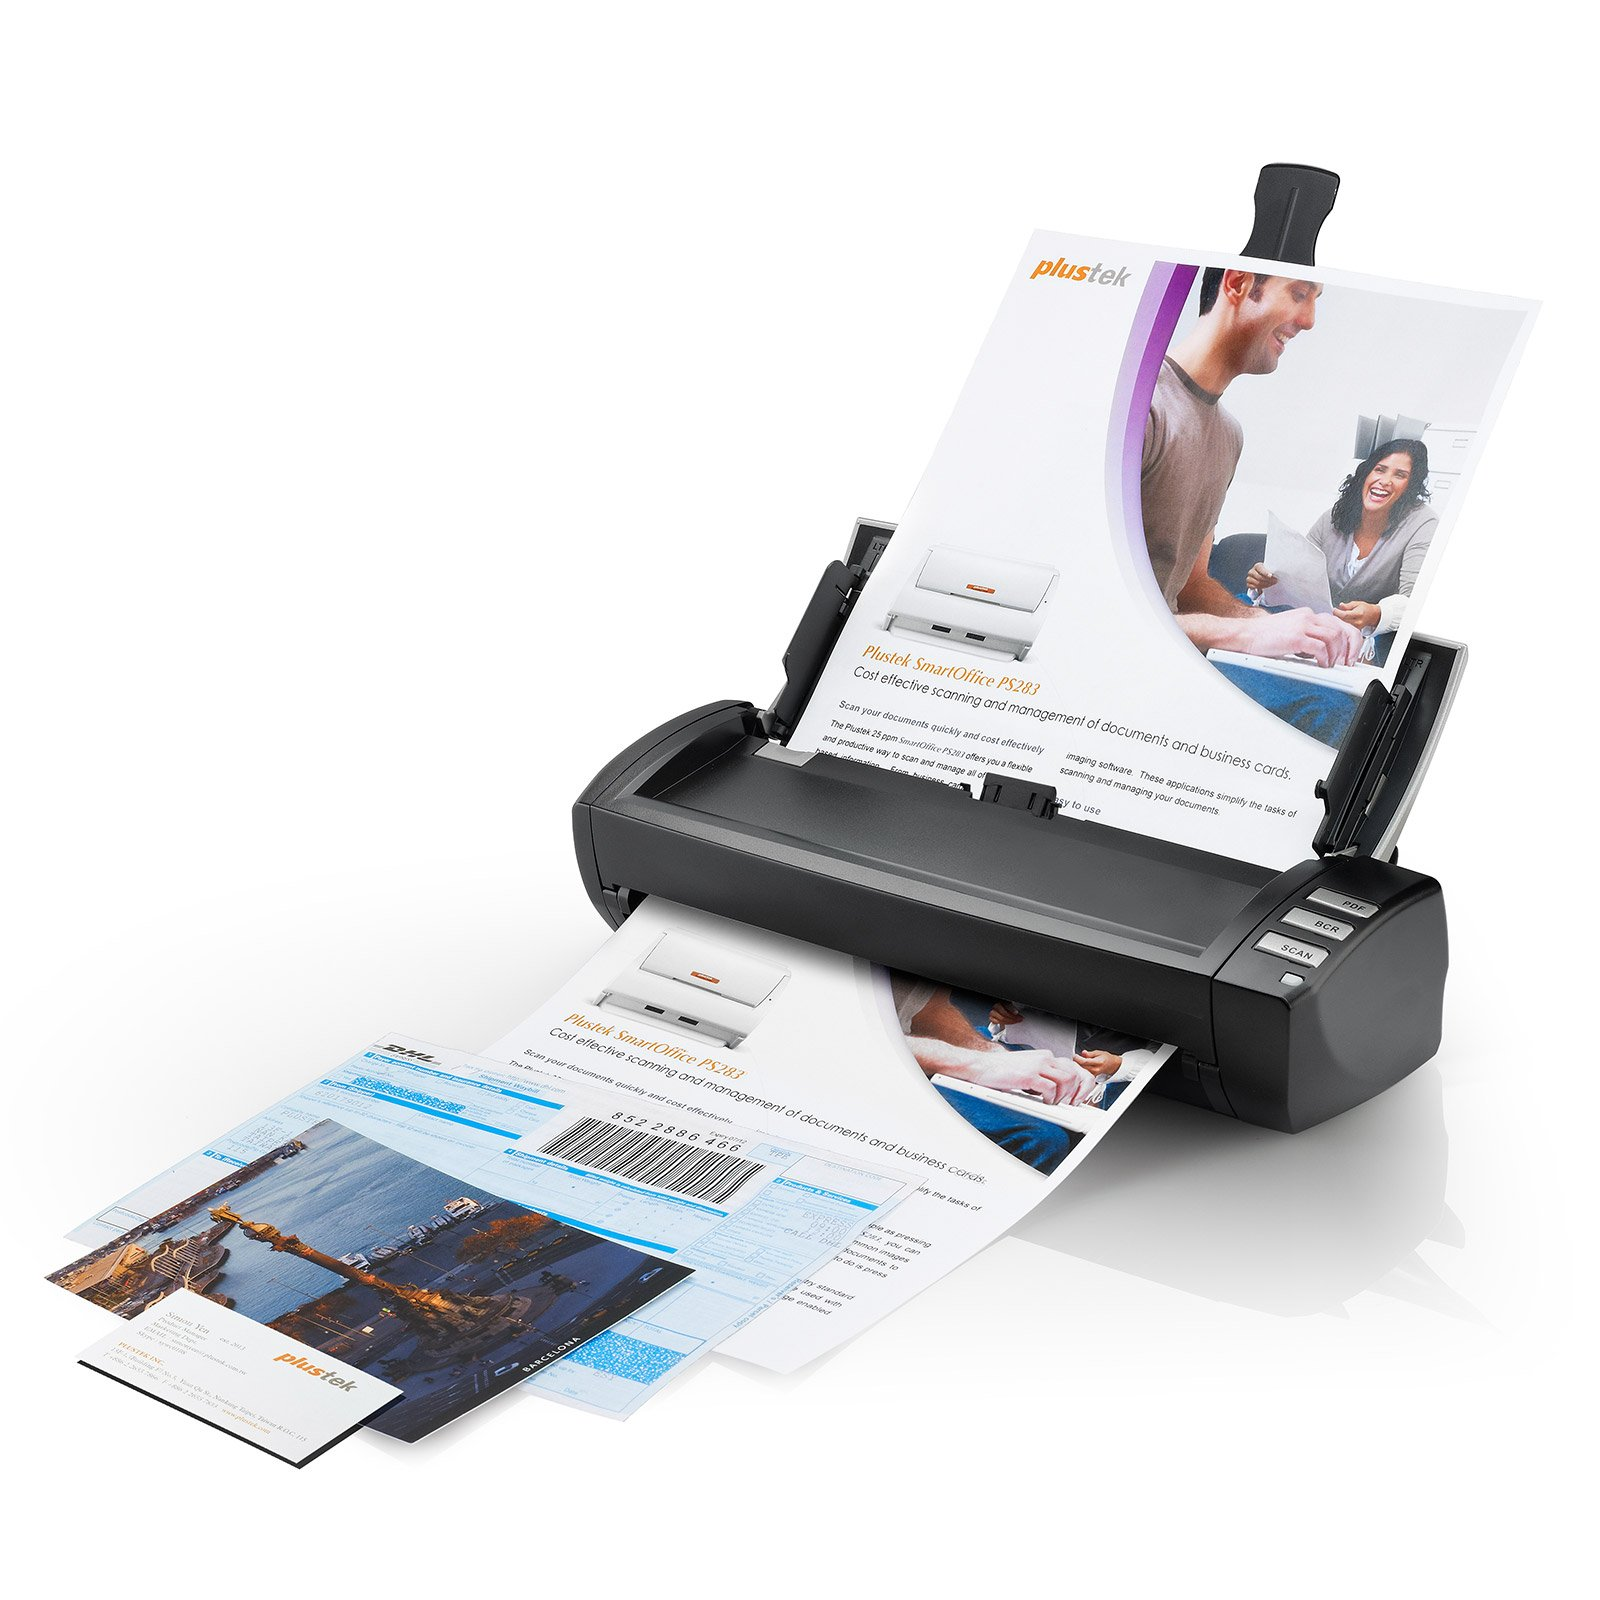 Plustek AD480 - Desktop Scanner for Card and Document, with 20 Page Paper Feeder and Exclusive Card Slot. for Windows only by Plustek